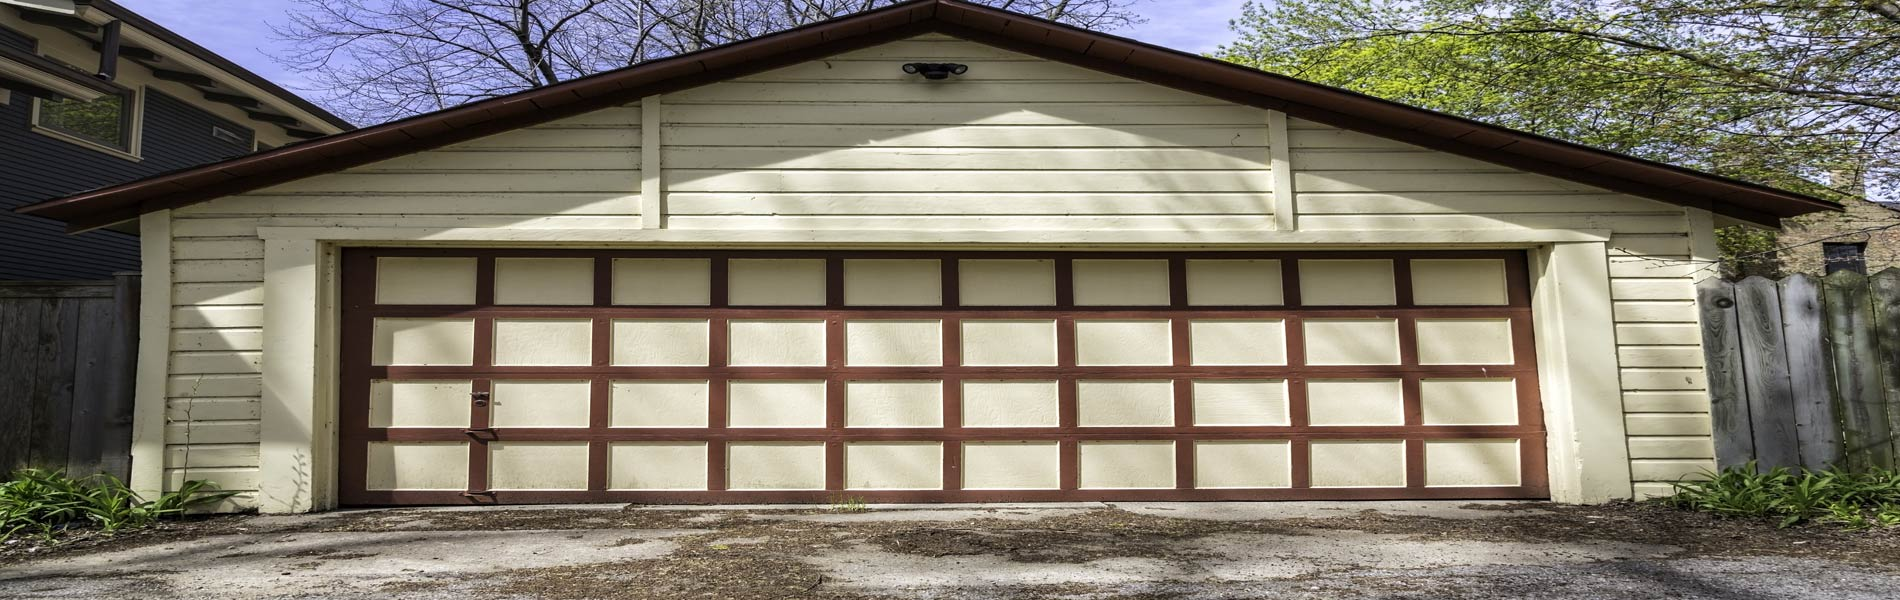 HighTech Garage Door Service, Annapolis, MD 410-787-5059